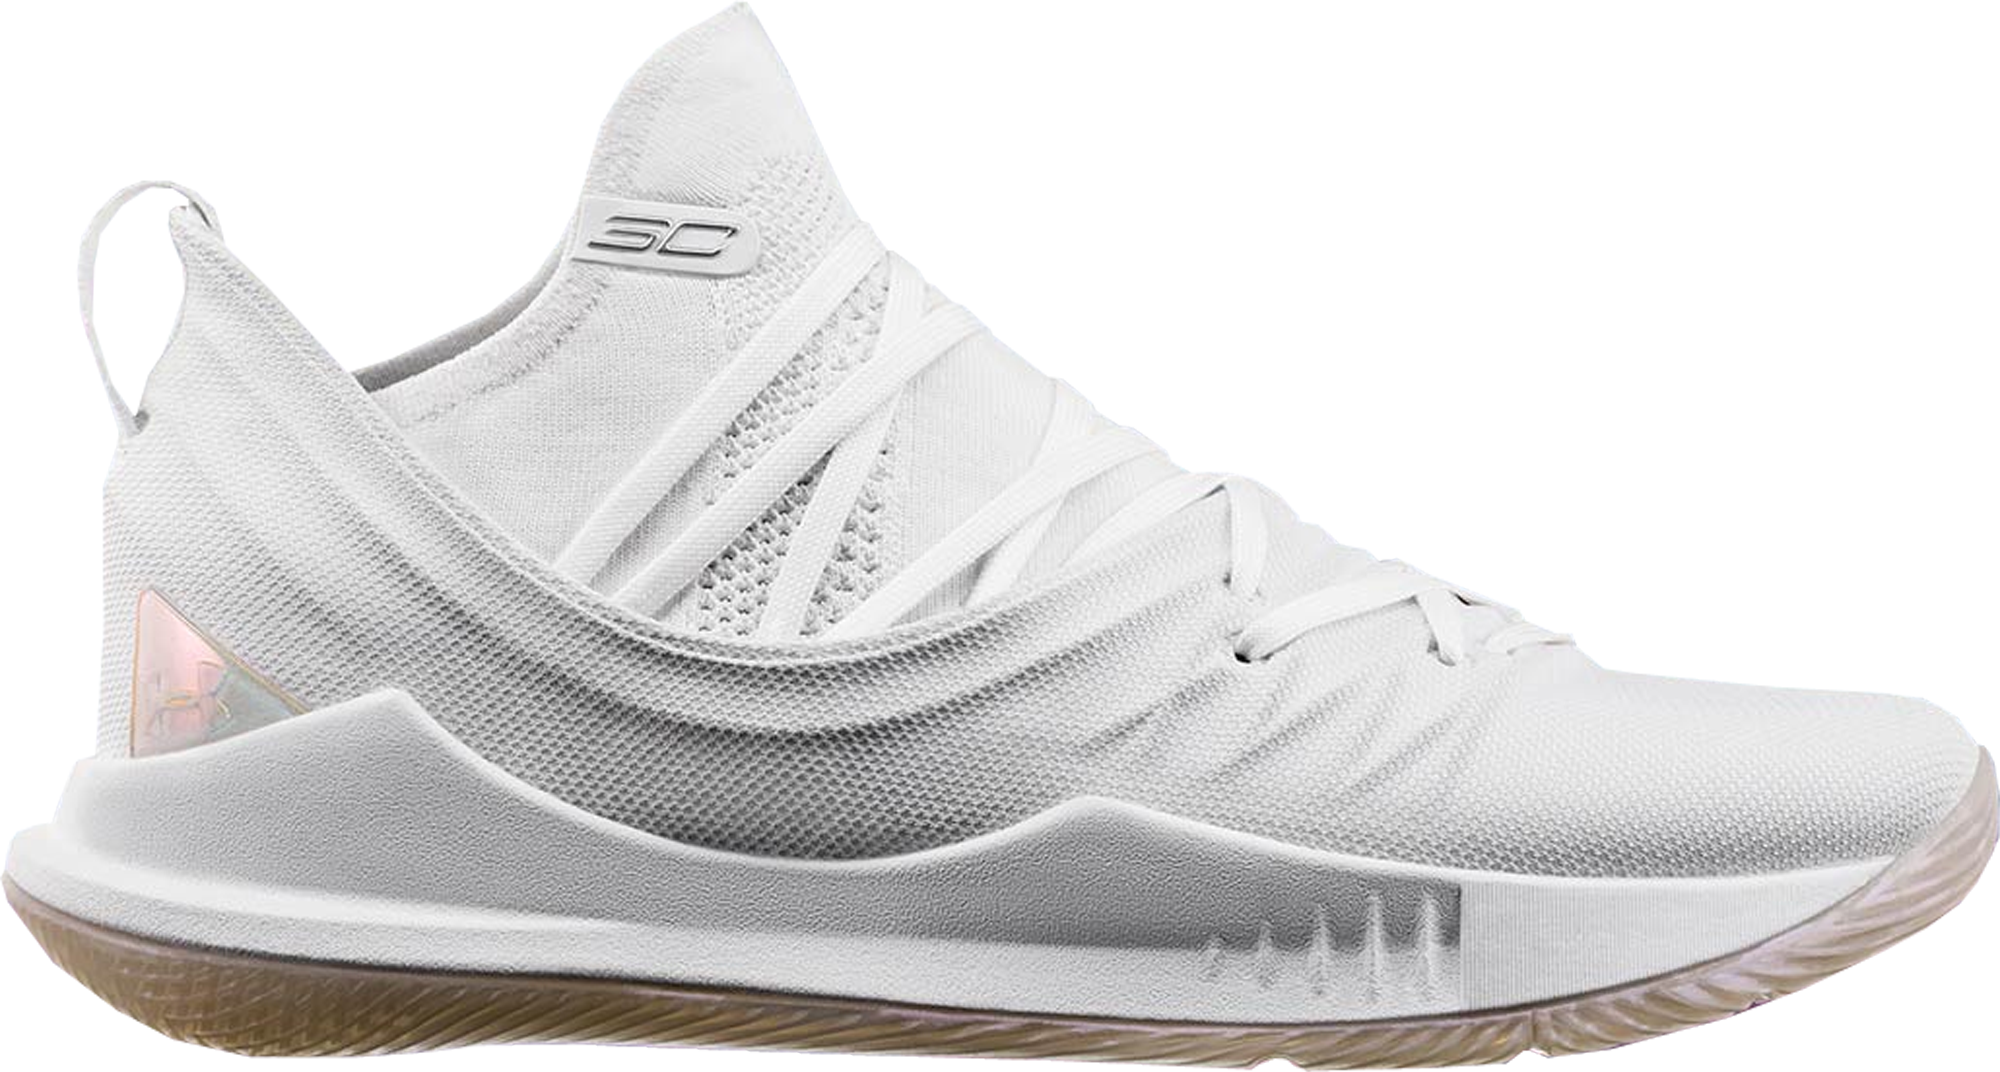 Under Armour Curry 5 White - Sneakers